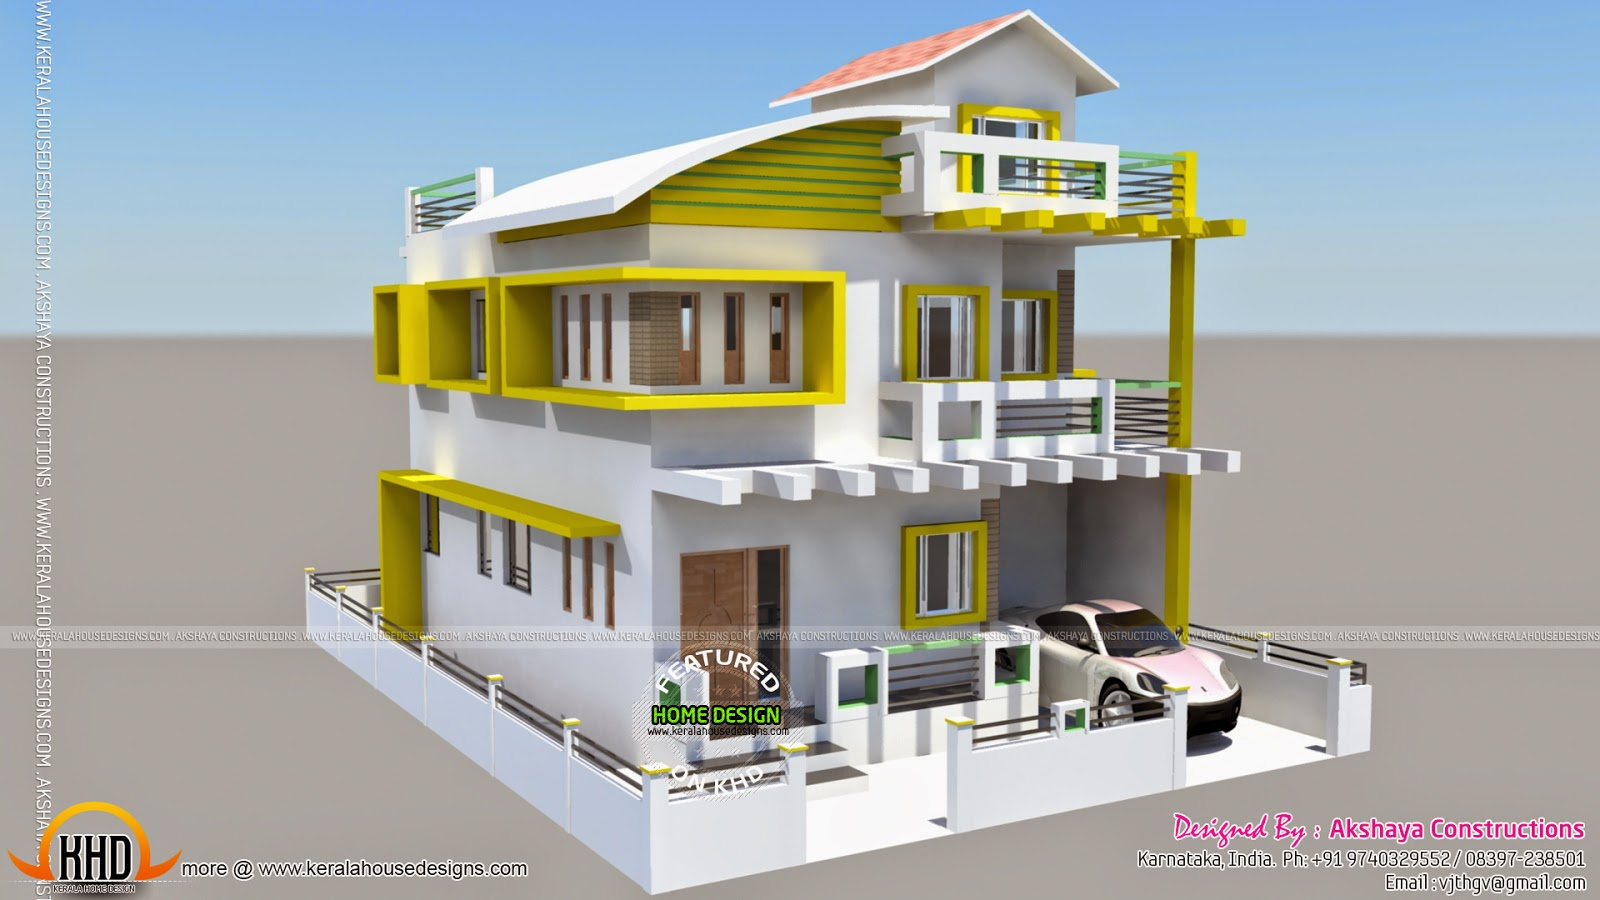 Karnataka home design kerala home design and floor plans for Side view house plans